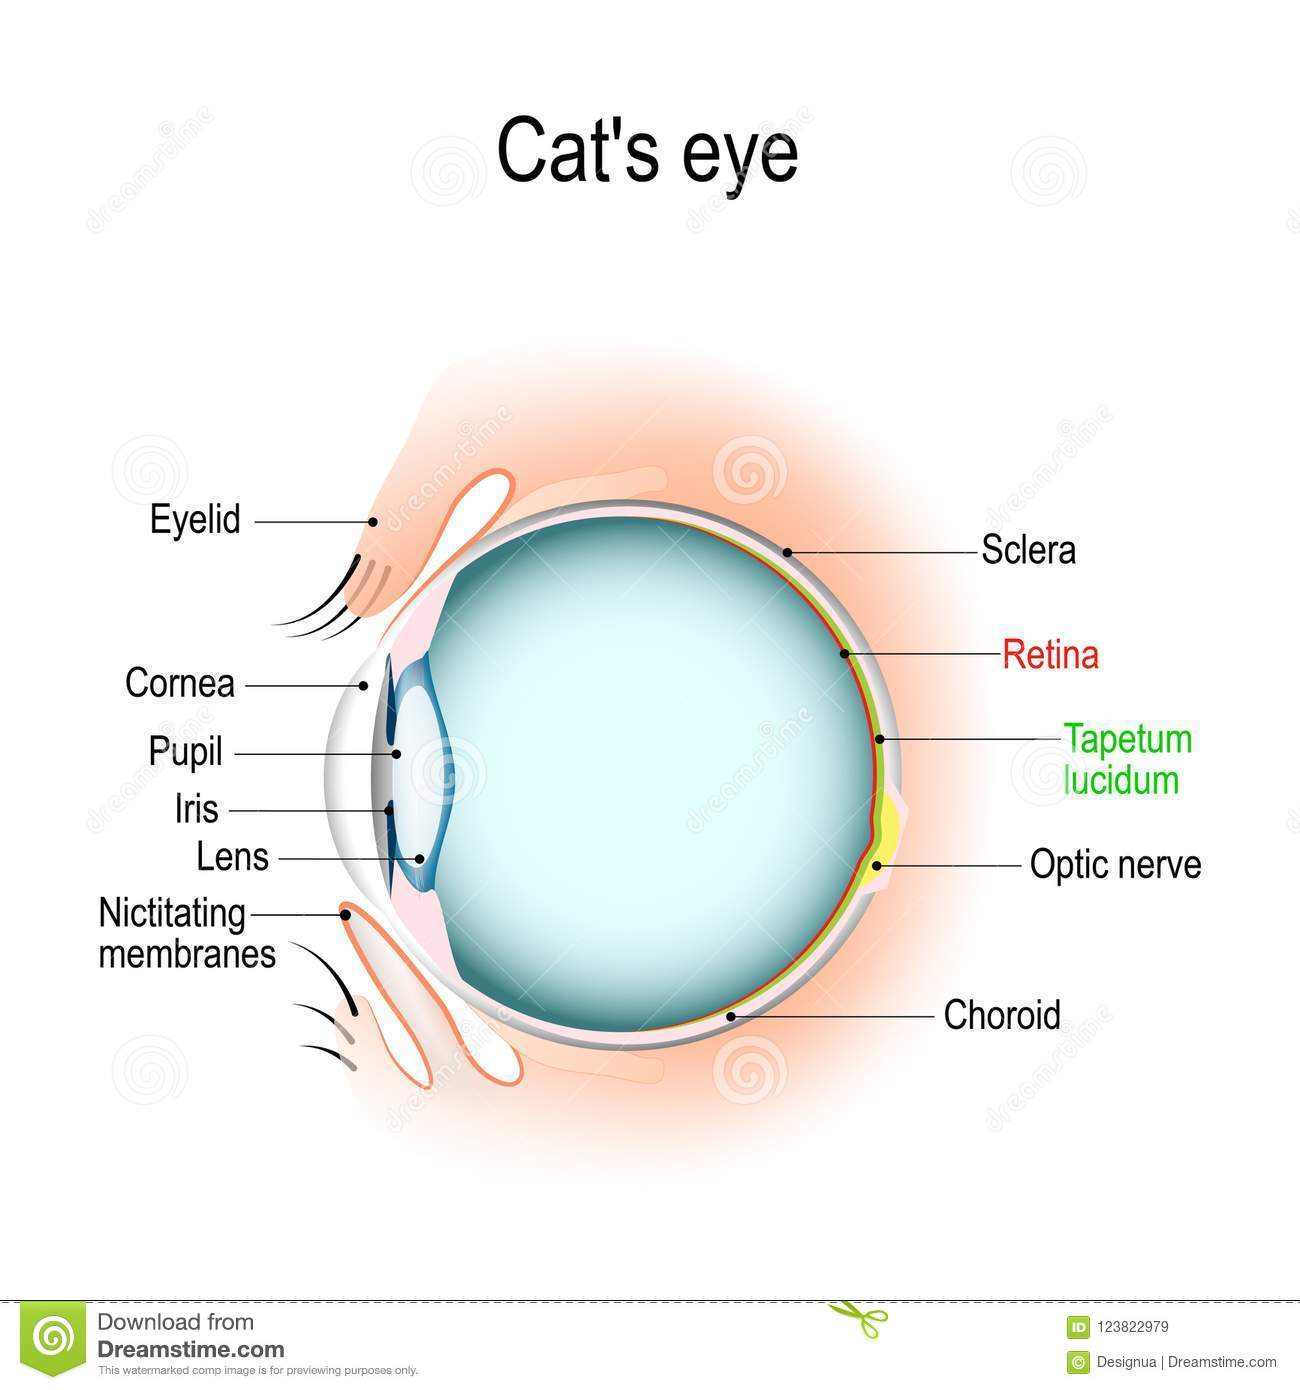 Anatomy of the cats or dogs eye stock vector illustration of anatomy of the cats or dogs eye vertical section of the eye and eyelids third eyelid and tapetum lucidum schematic diagram detailed illustration ccuart